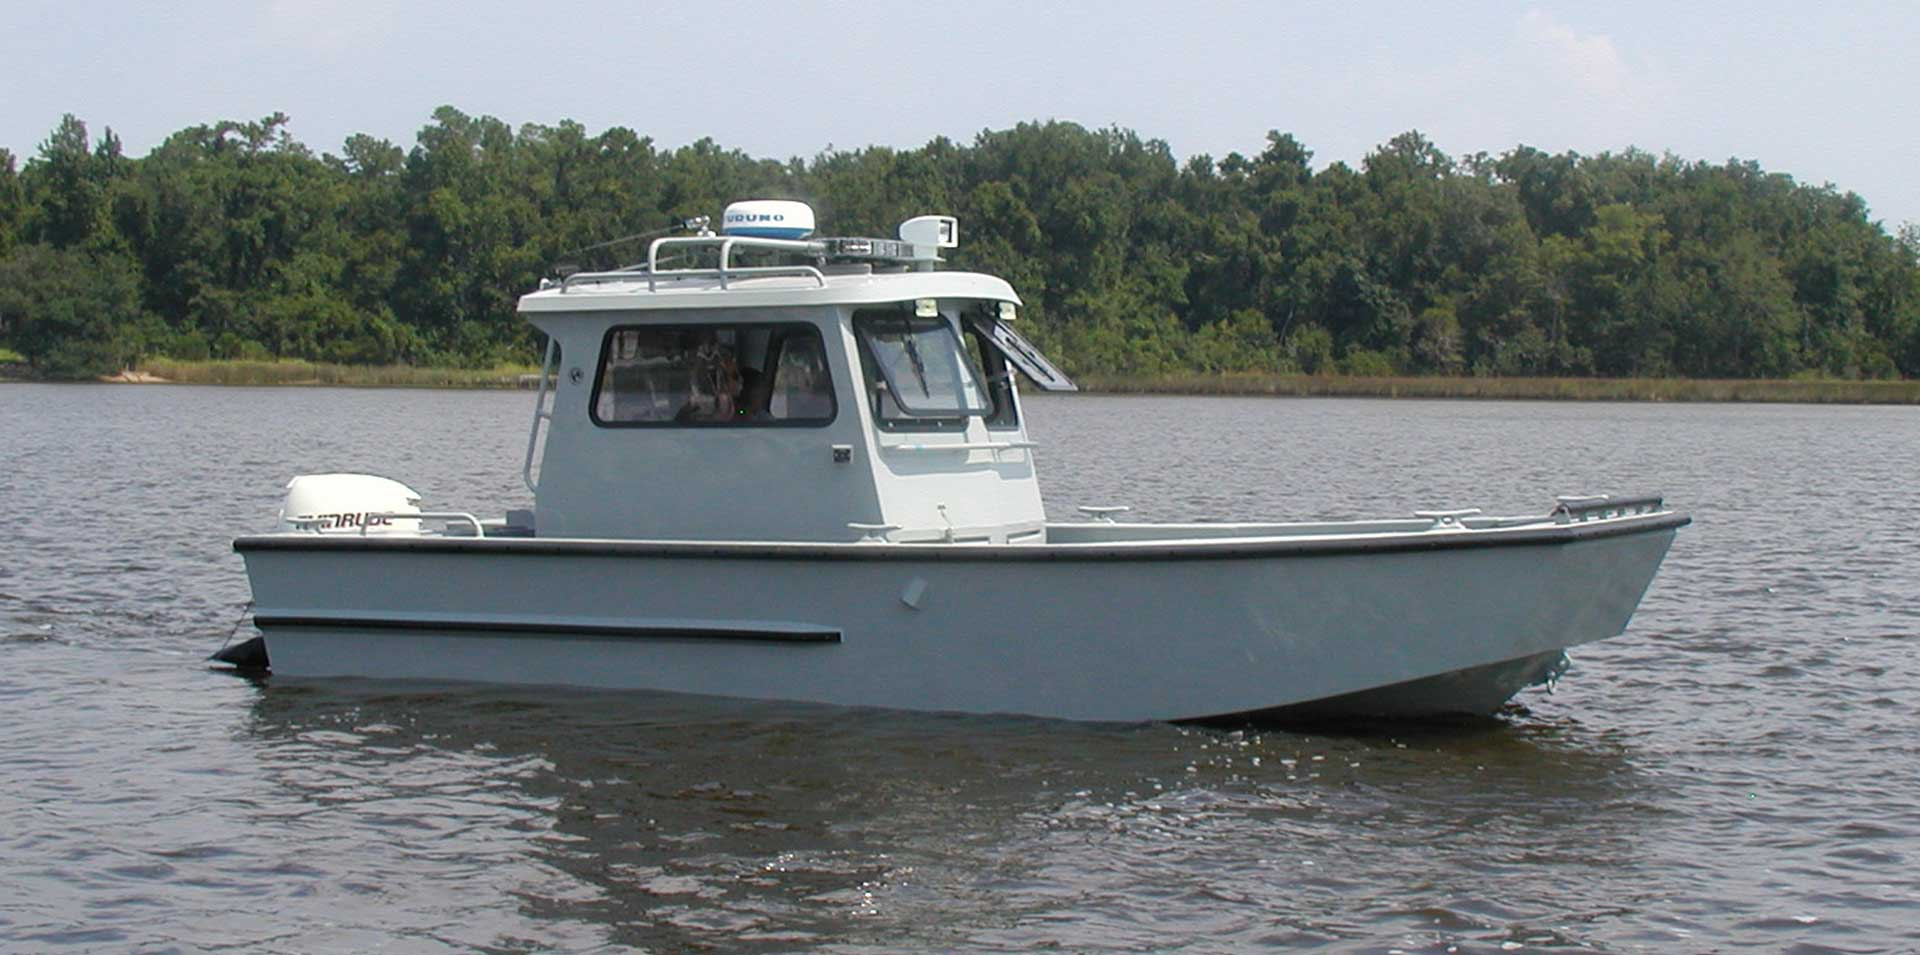 Silver Ships Explorer Series full pilothouse patrol boat